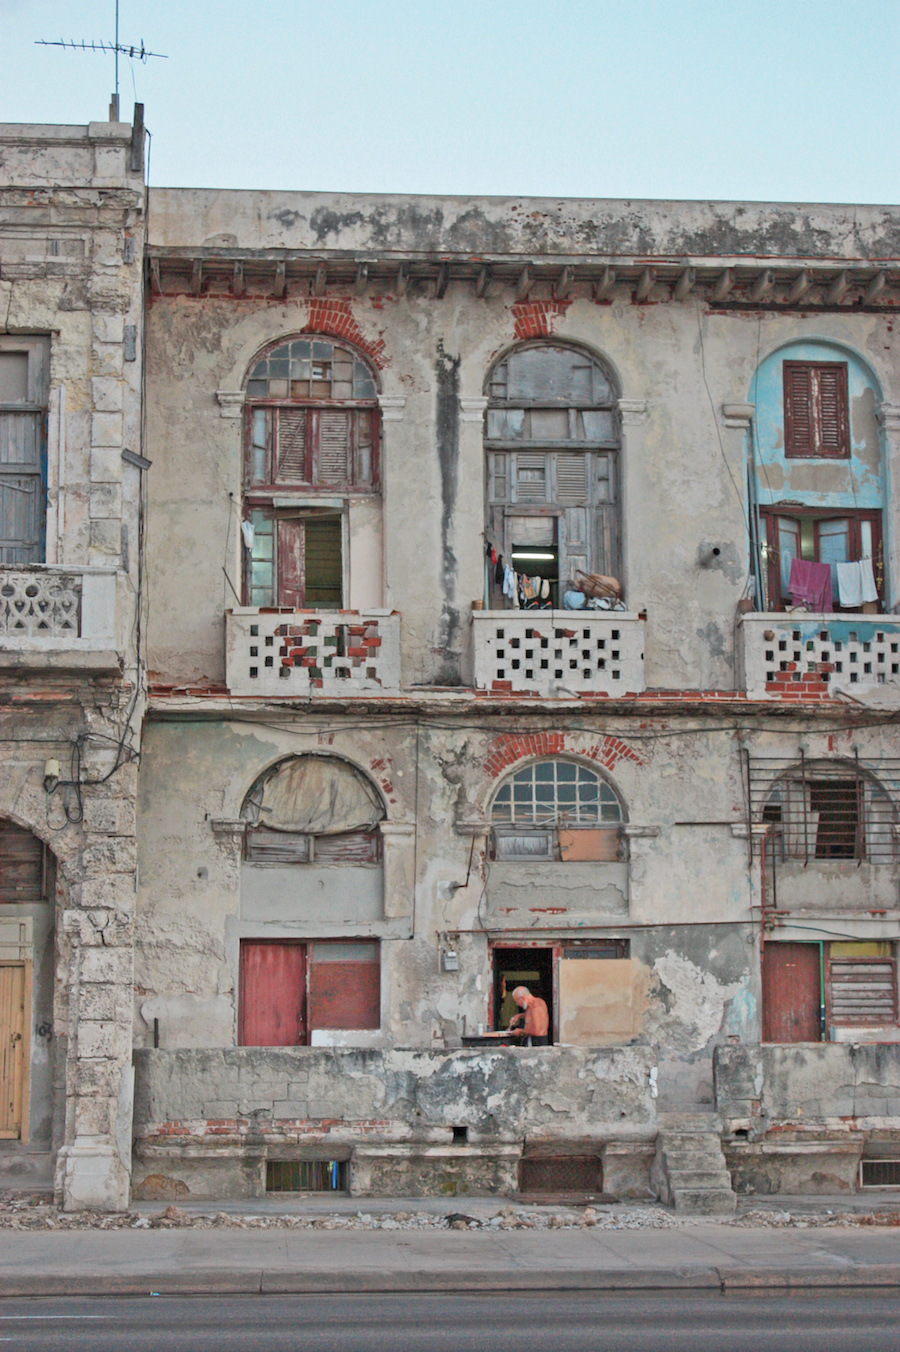 Cuban Home on the Malecon, Havana, Cuba